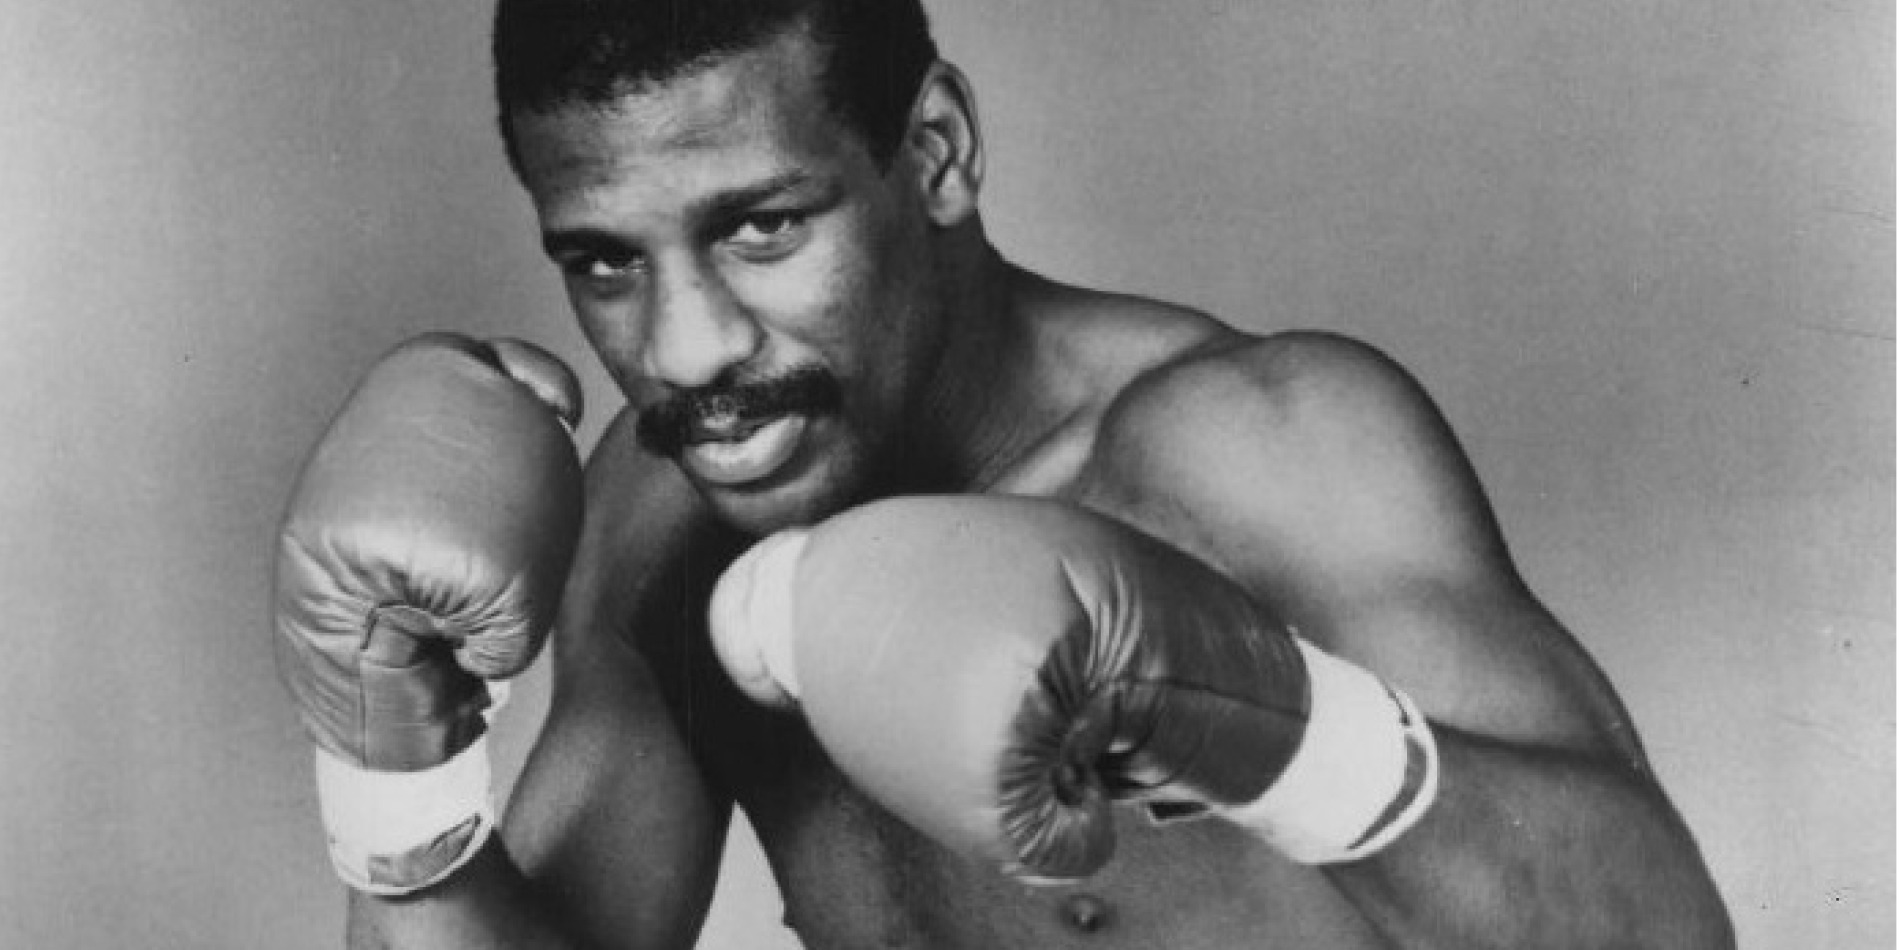 michaelspinkstwitter - The Insanely Underrated Michael Spinks